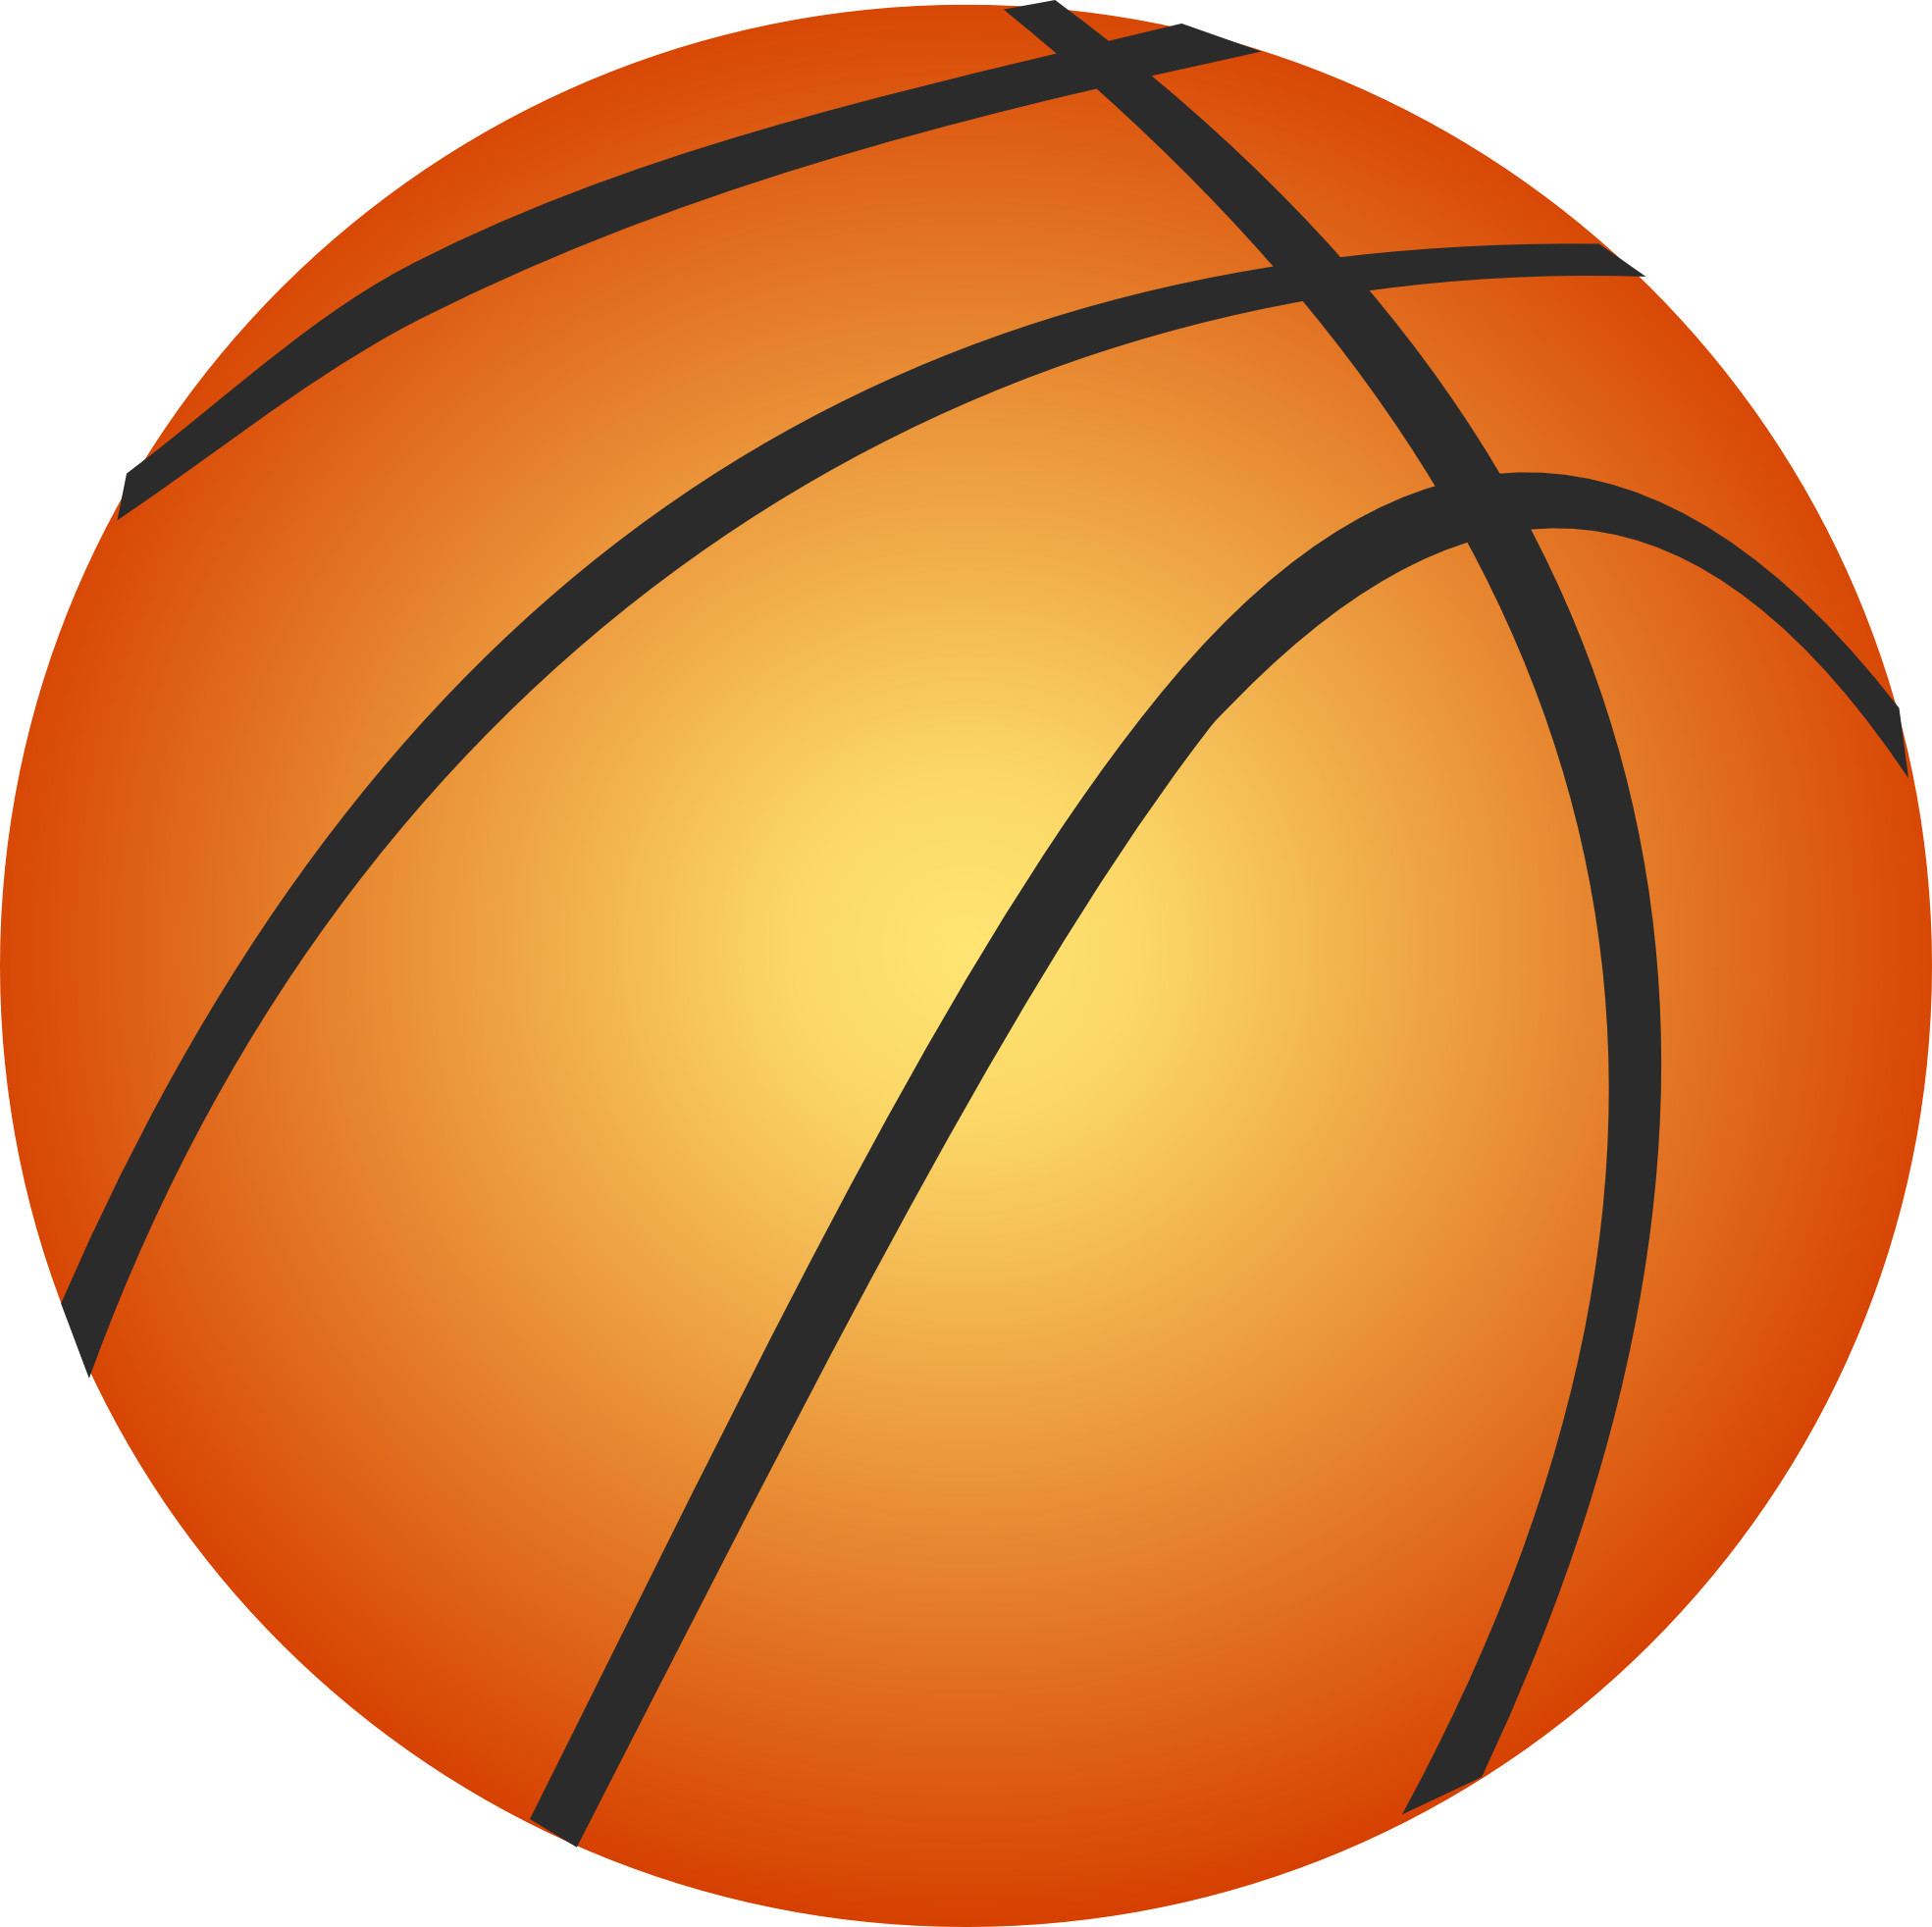 1969x1964 Basketball with basket clipart transparent background